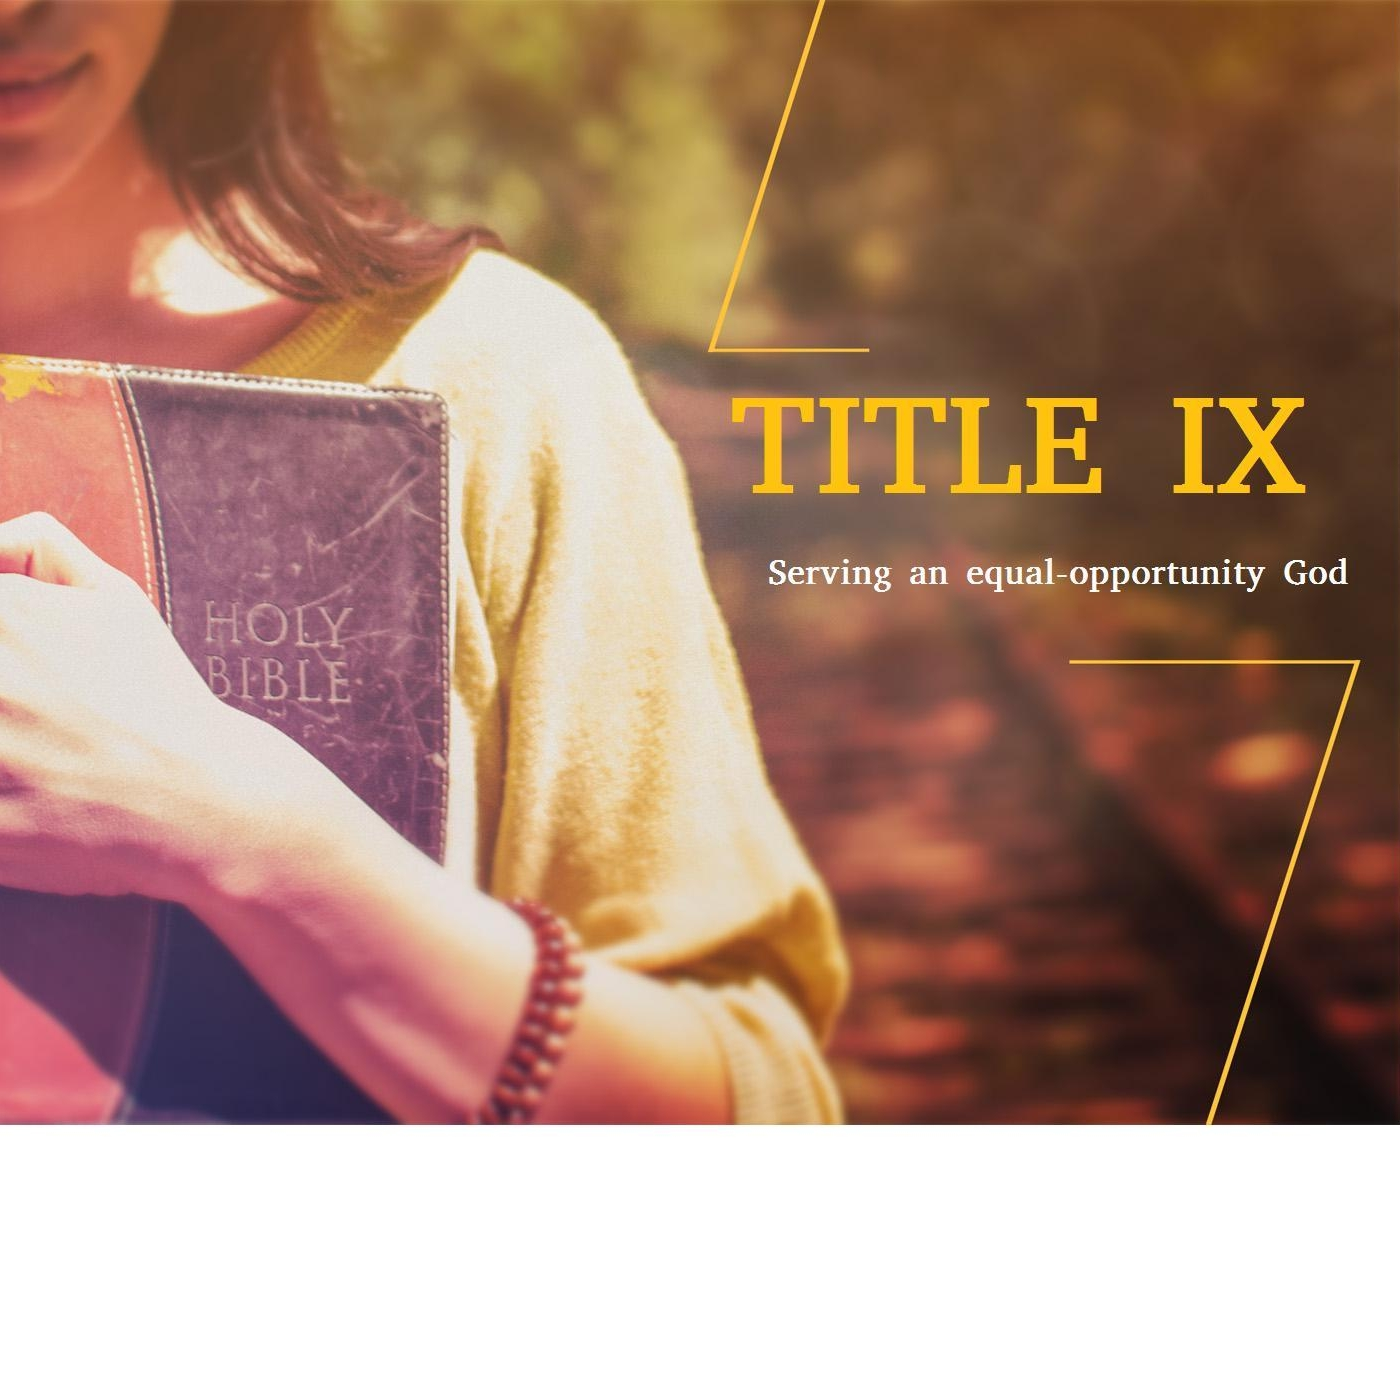 Title IX: Serving an Equal Opportunity God